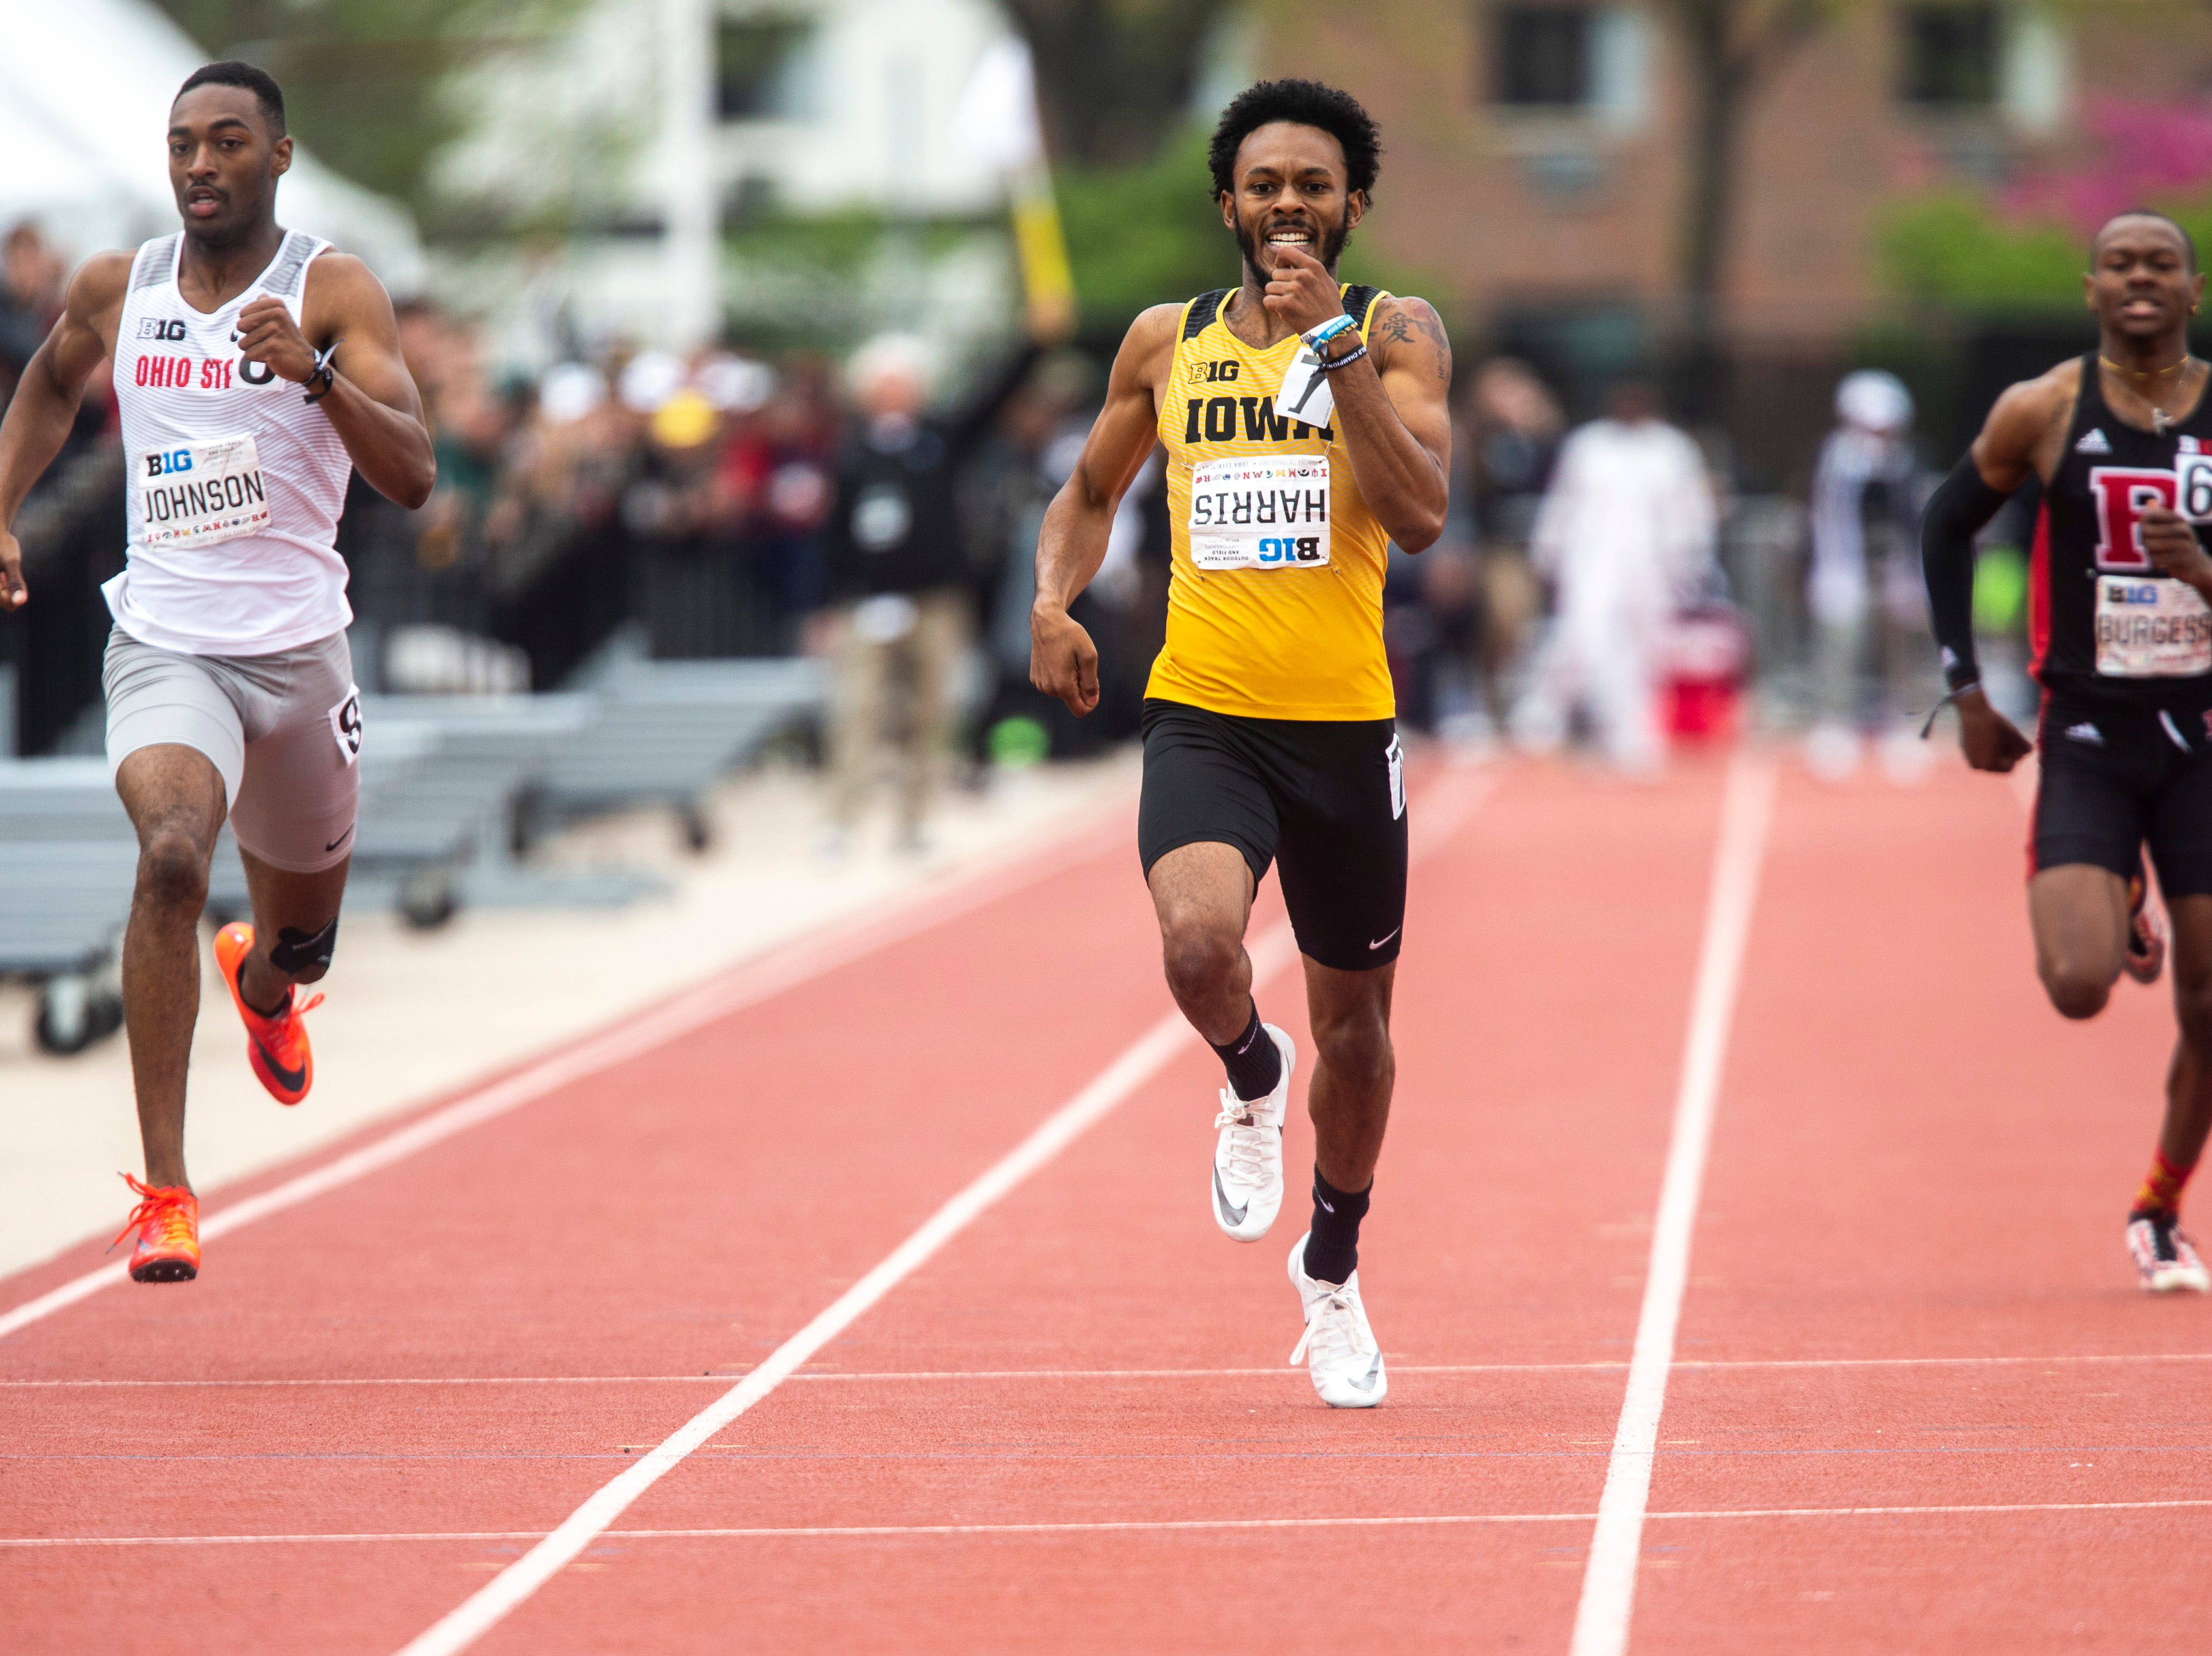 Iowa's Mar'yea Harris compete in the 400 meter finals during the final day of Big Ten track and field outdoor championships, Sunday, May 12, 2019, at Francis X. Cretzmeyer Track on the University of Iowa campus in Iowa City, Iowa. Harris finished first, with a time of 45.67.